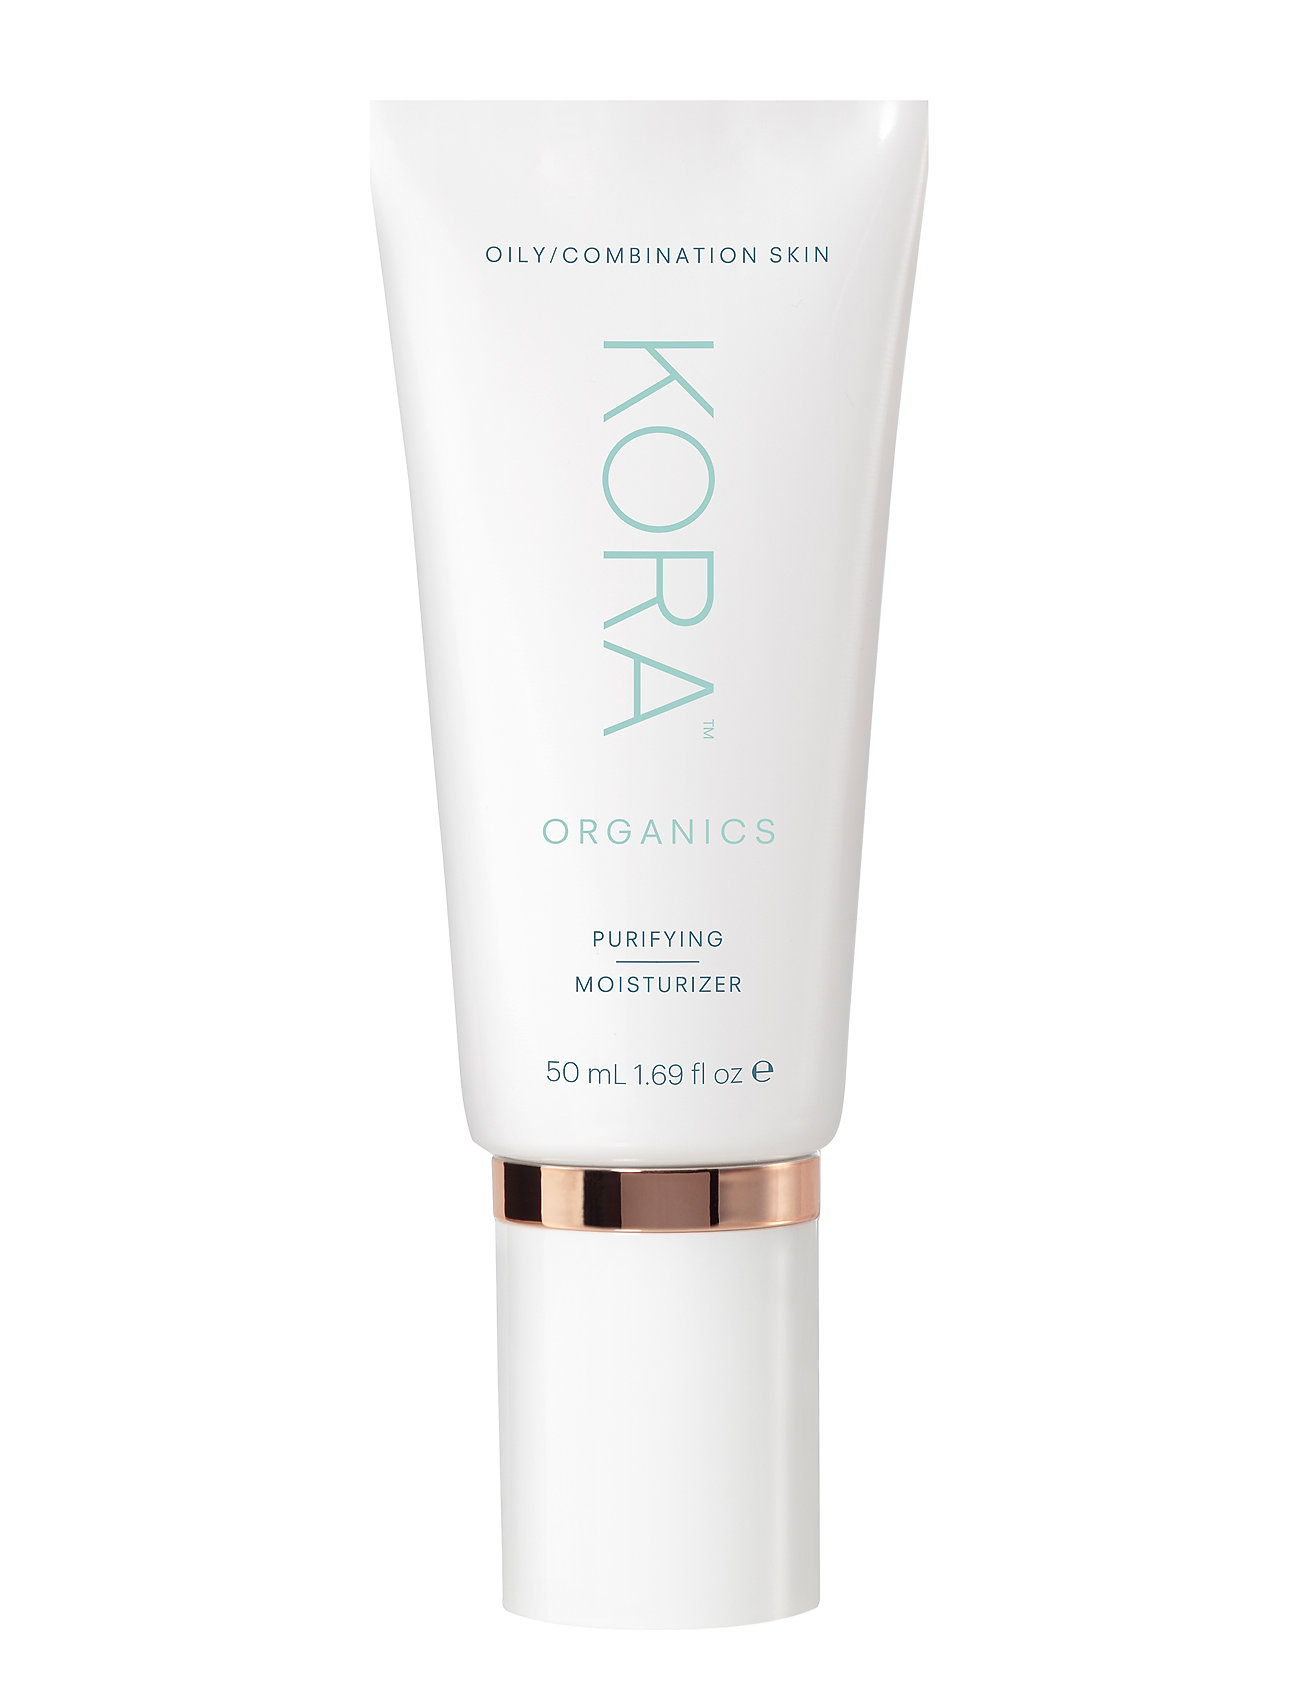 Image of Purifying Moisturizer Beauty WOMEN Skin Care Face Day Creams Nude Kora Organics (3350773613)